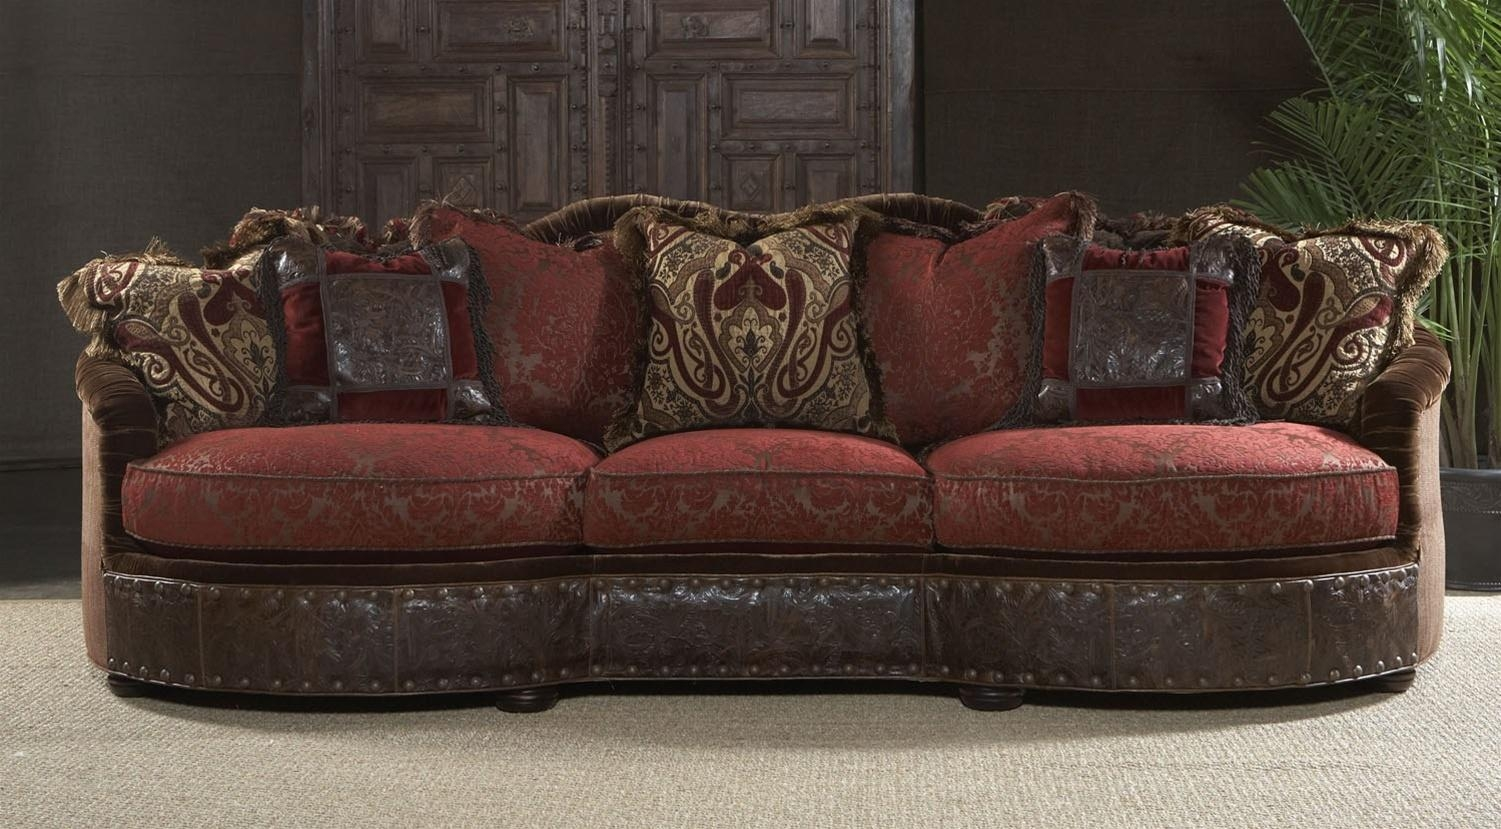 Furniture: Amazon Sofas And Chairs | Burgundy Sofa | Red Sectional For Burgundy Sectional Sofas (Image 5 of 20)